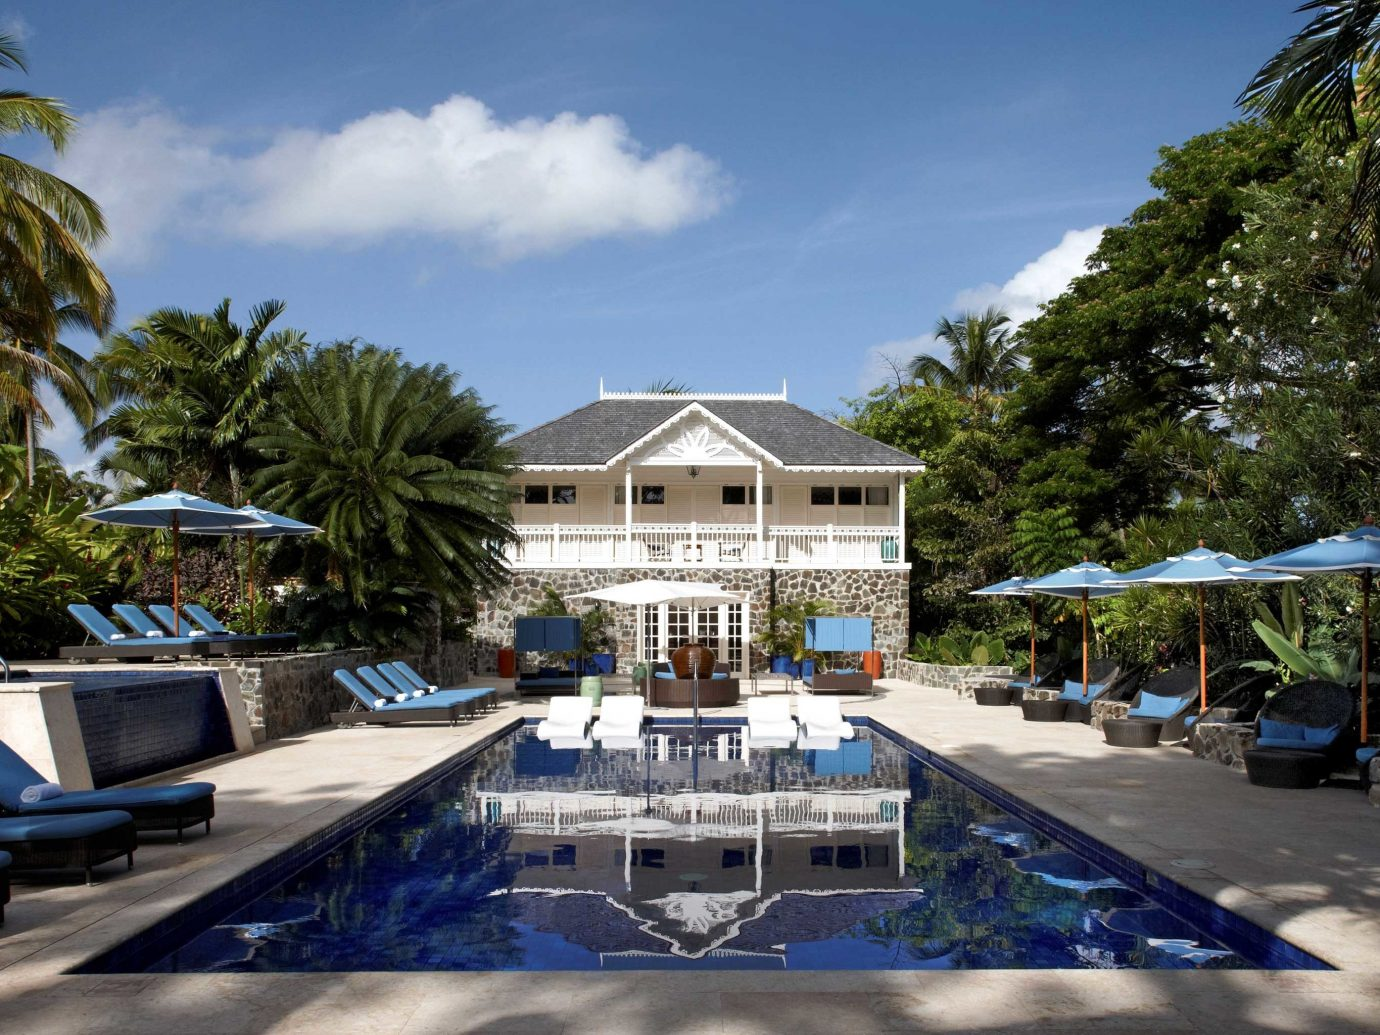 All-Inclusive Resorts caribbean Living Lounge Luxury Modern Pool tree outdoor Resort swimming pool estate vacation plaza marina palace Water park condominium lined